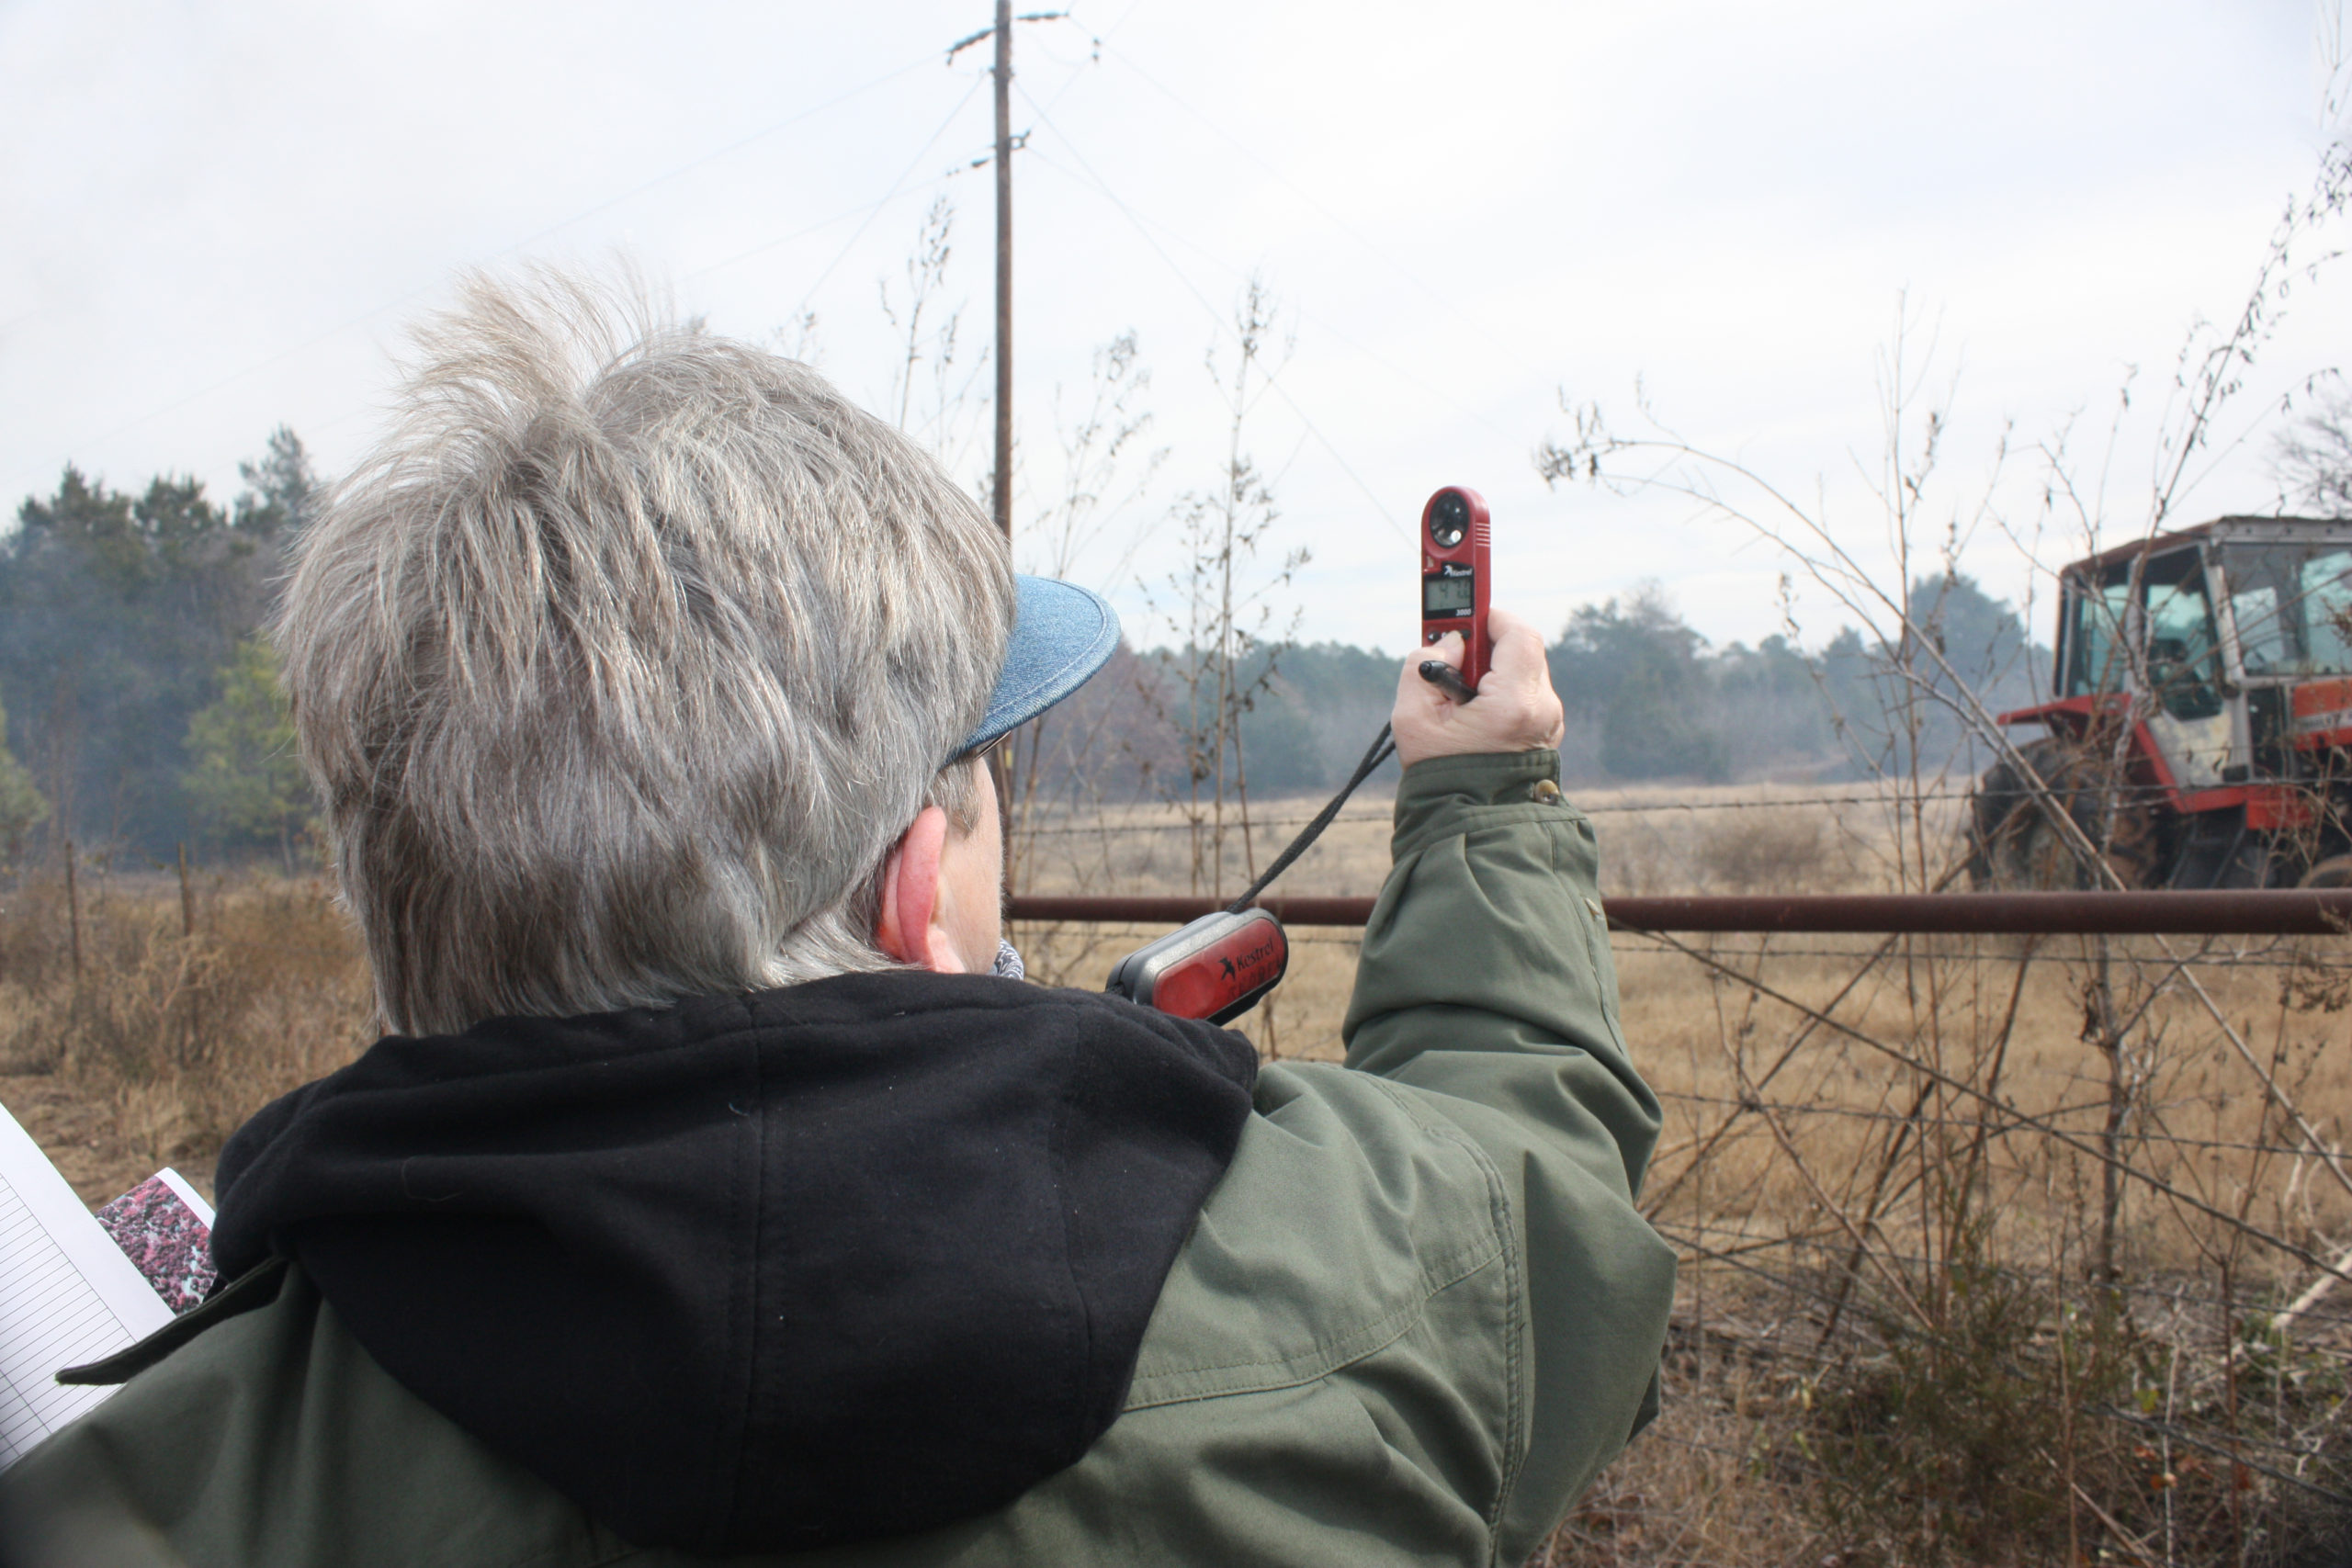 Member of the SCTPBA monitoring the weather during a burn